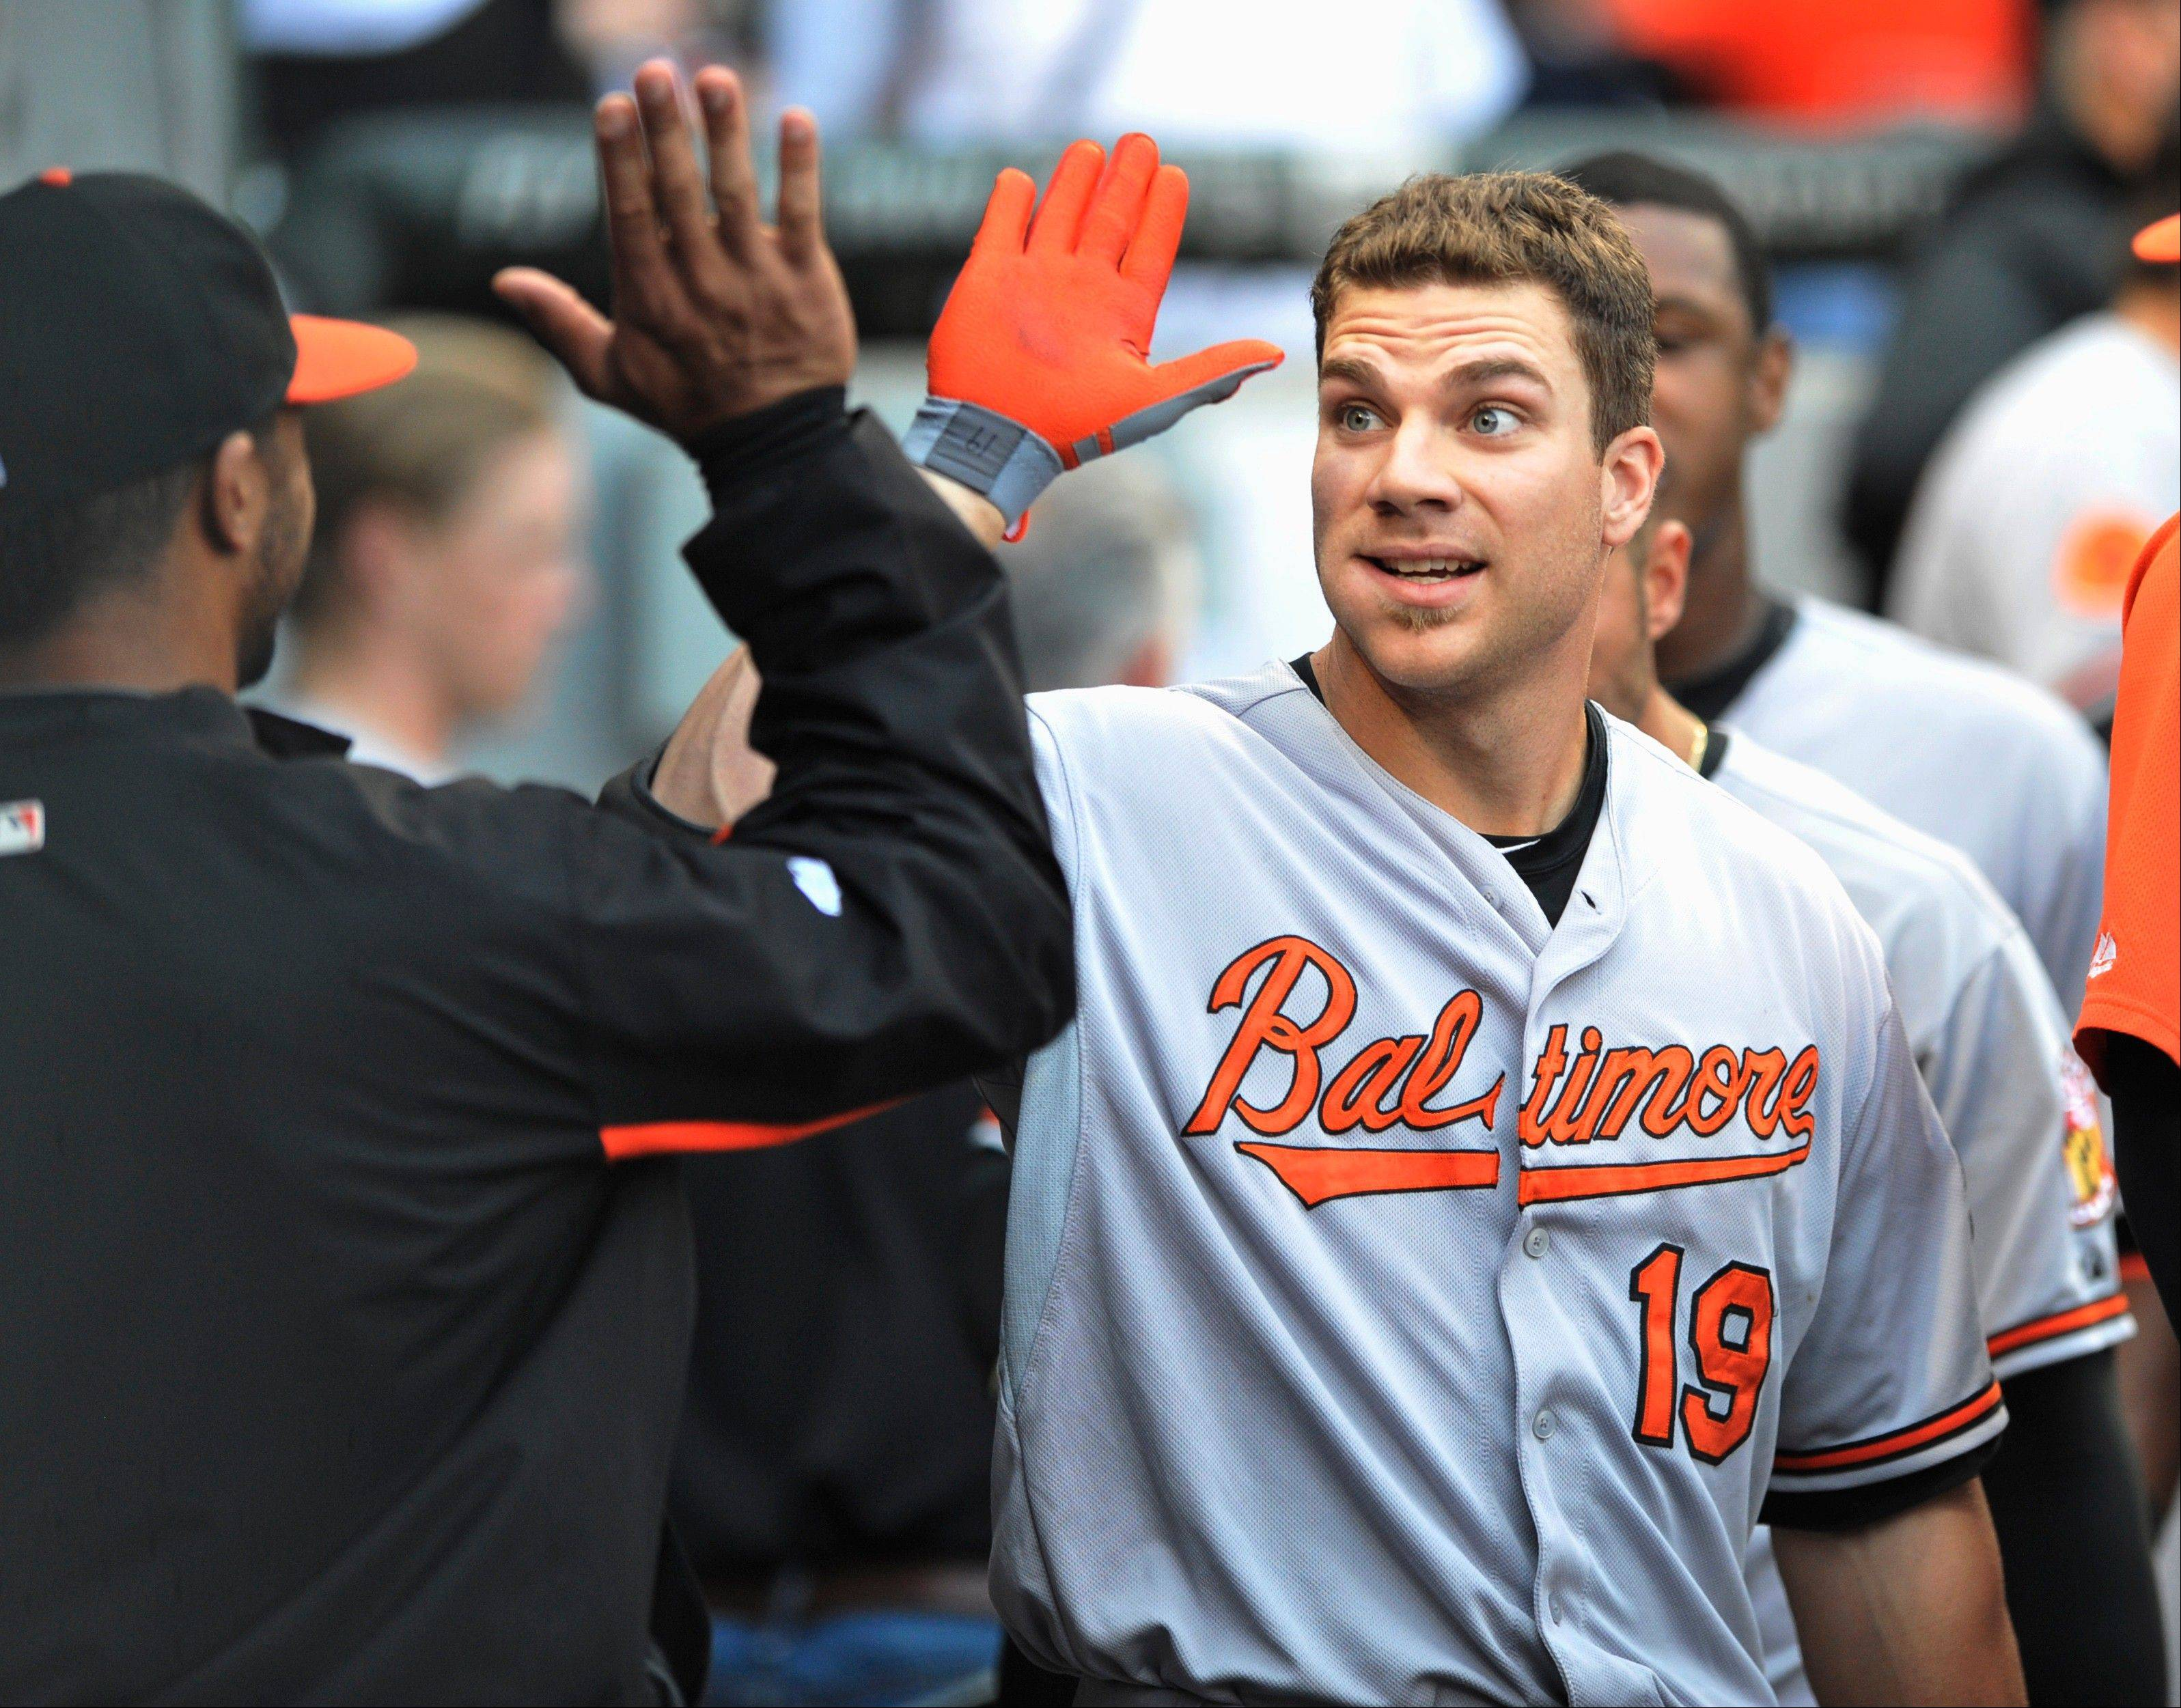 Baltimore's Chris Davis (19) celebrates with teammates in the dugout after hitting a solo home run during the fourth inning on Wednesday night against the Sox.